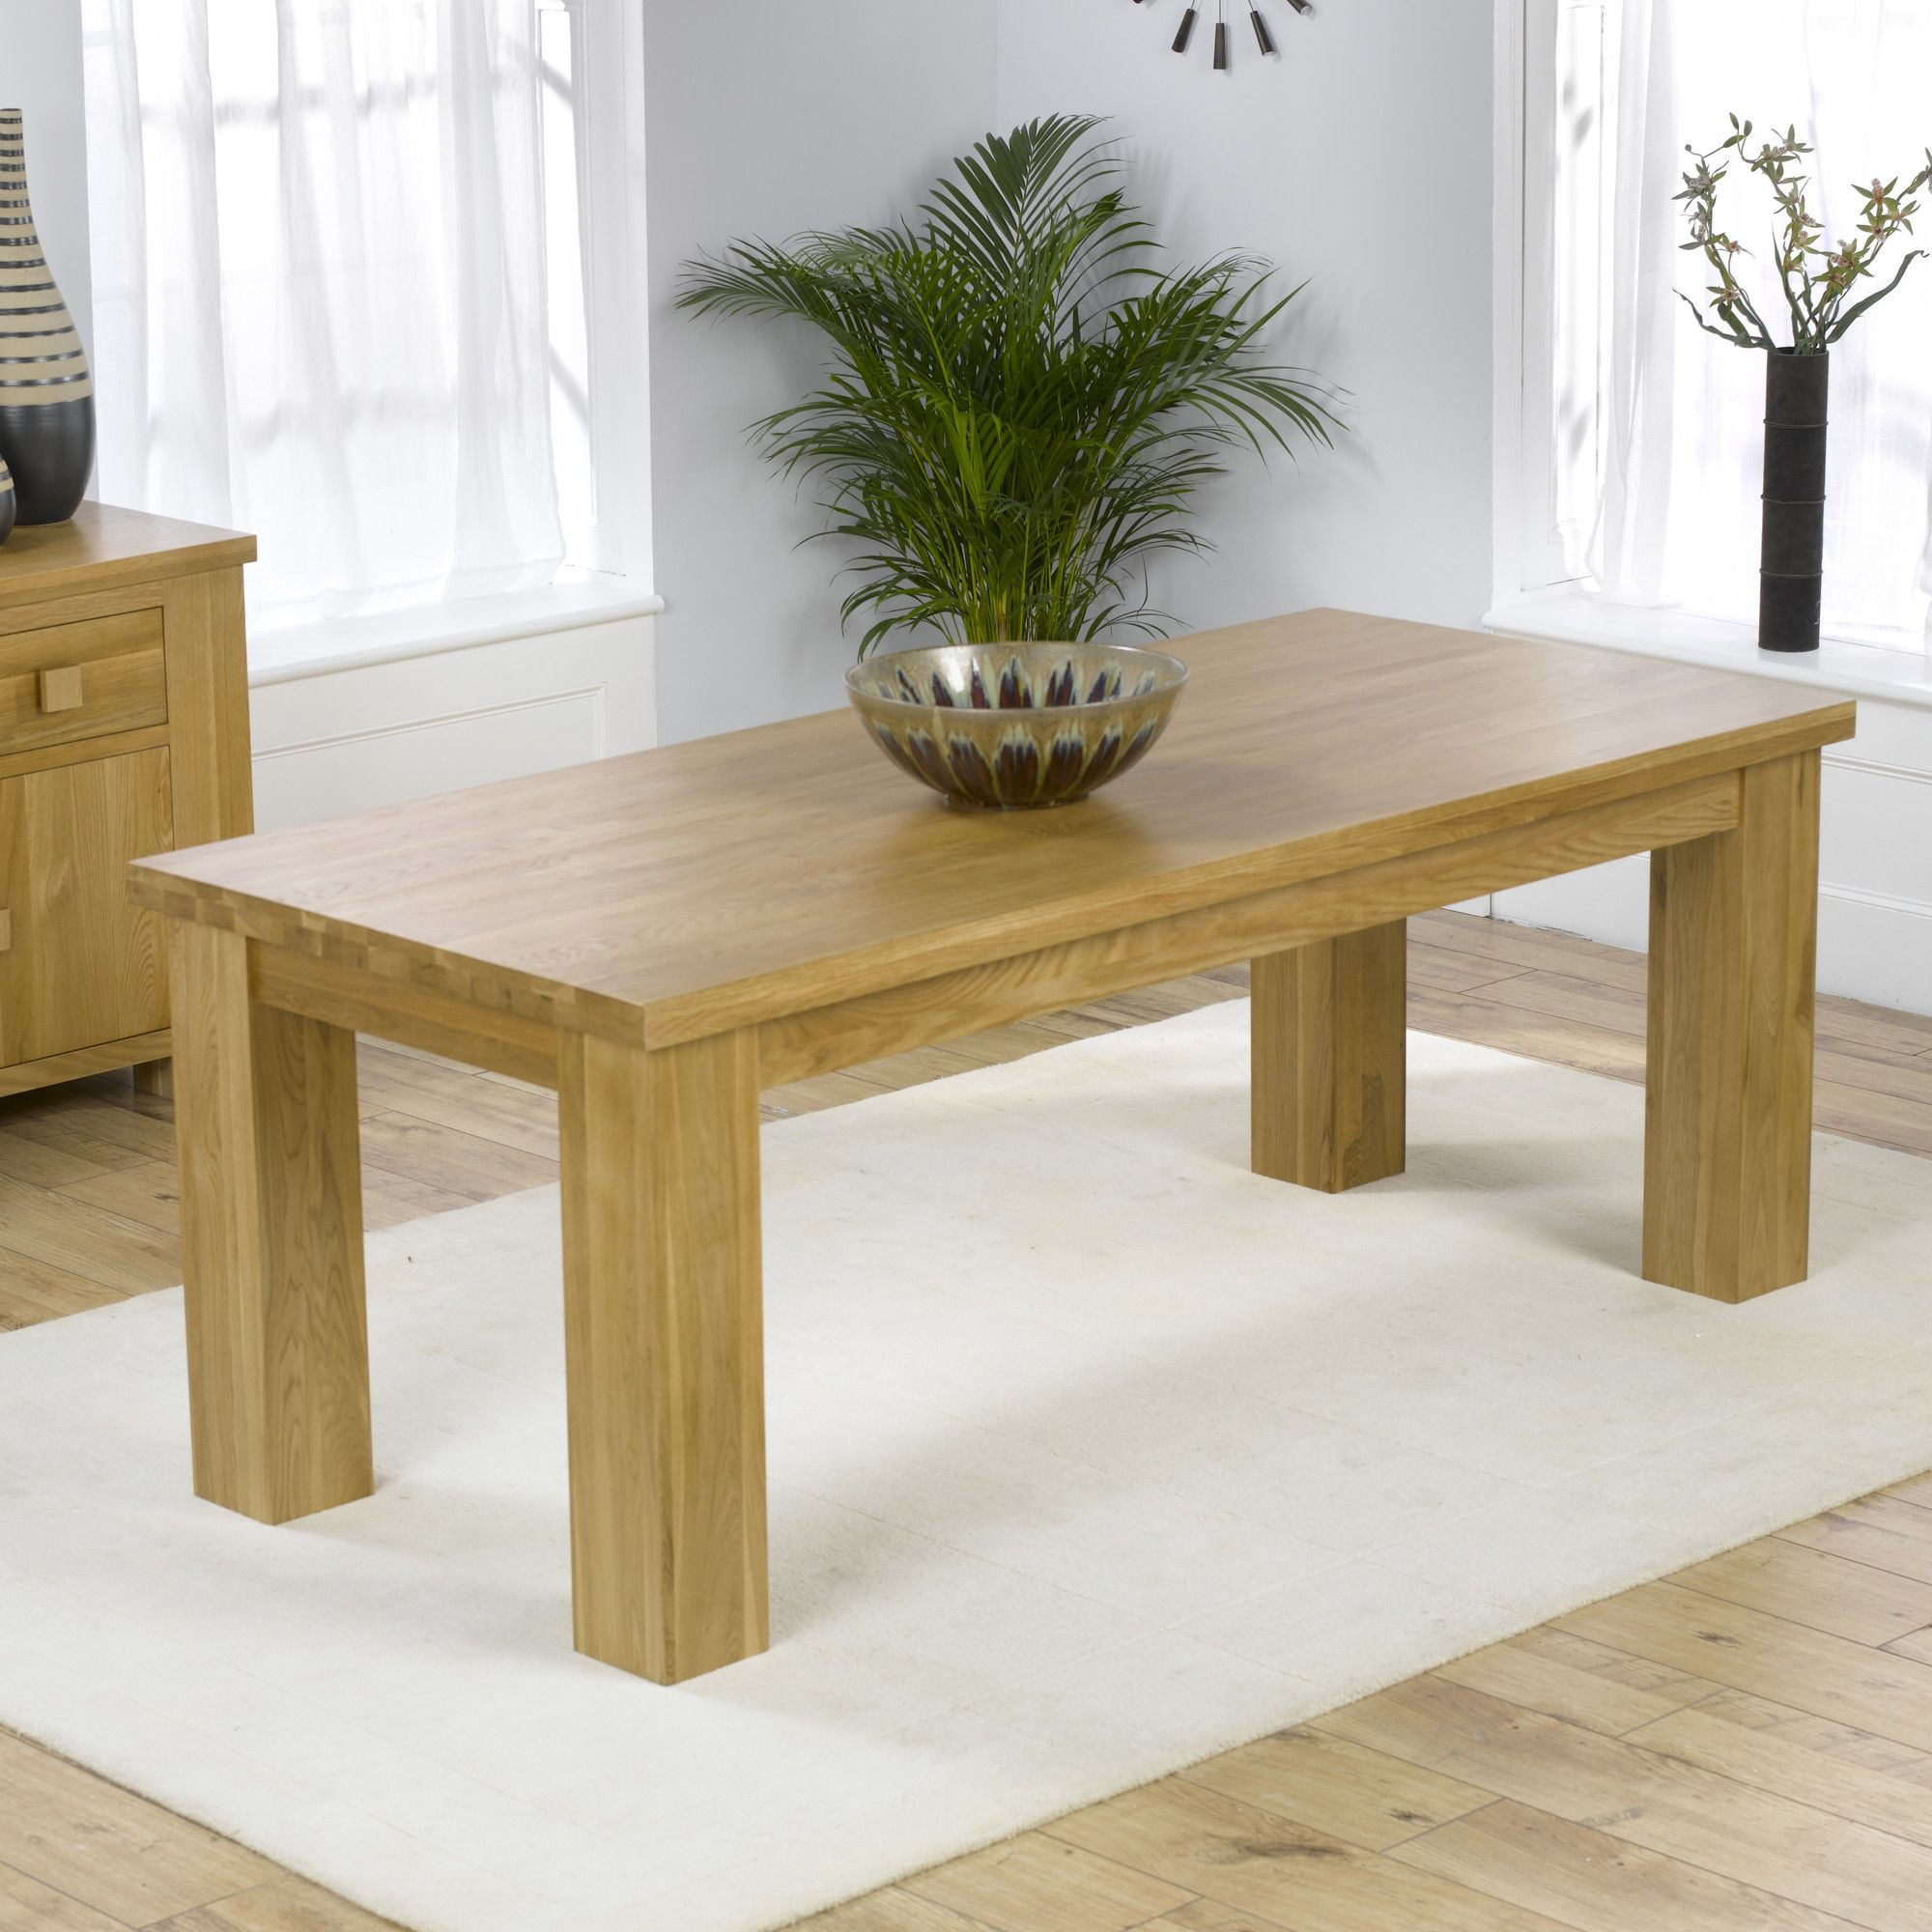 Mark Harris Furniture Barcelona Solid Oak Dining Table - 180 cm